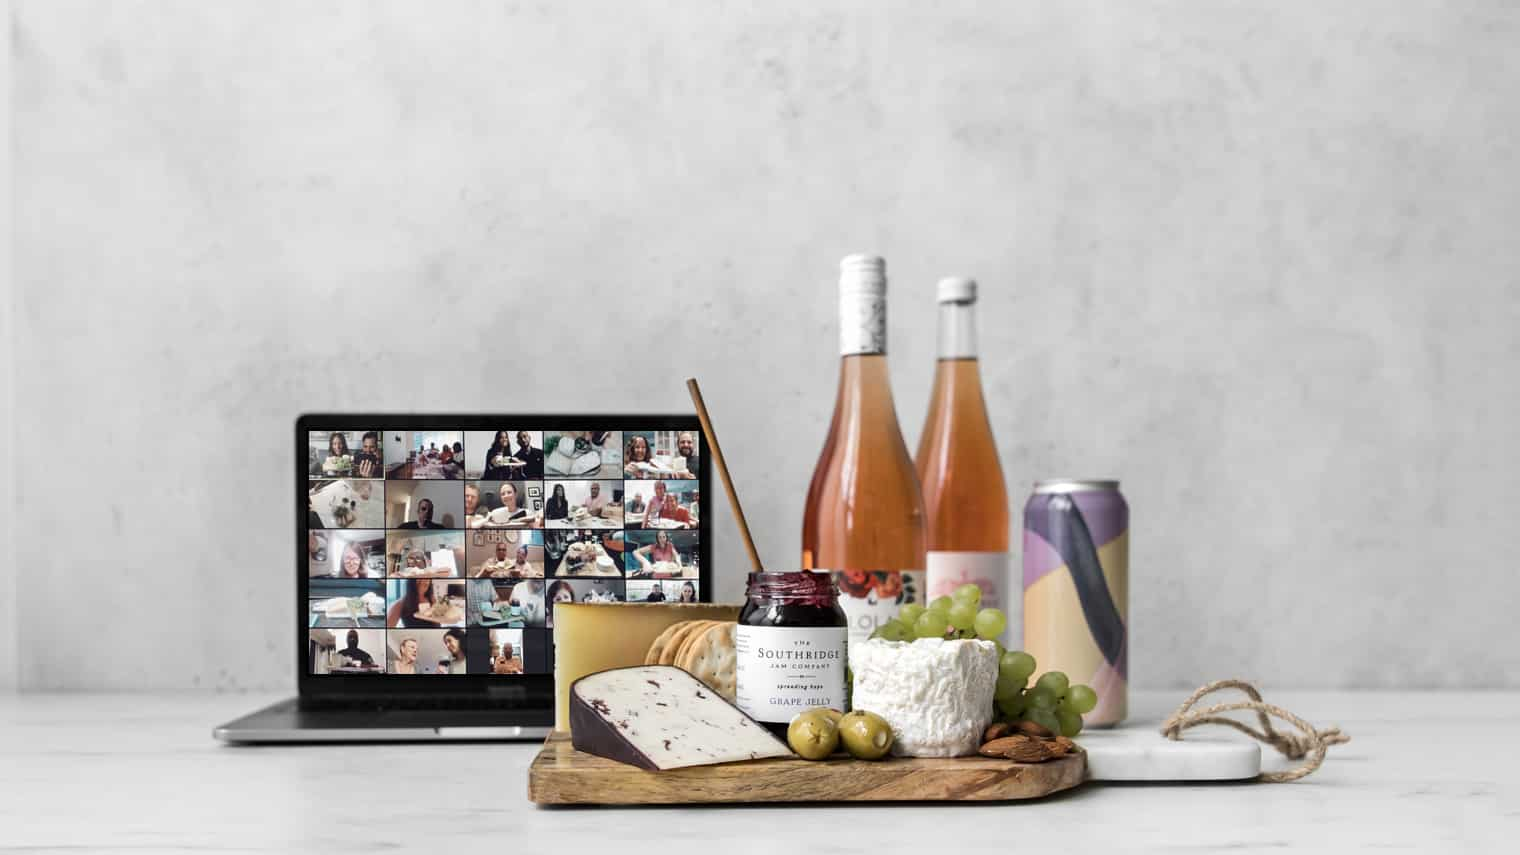 Computer, wine bottles and styled cheese board